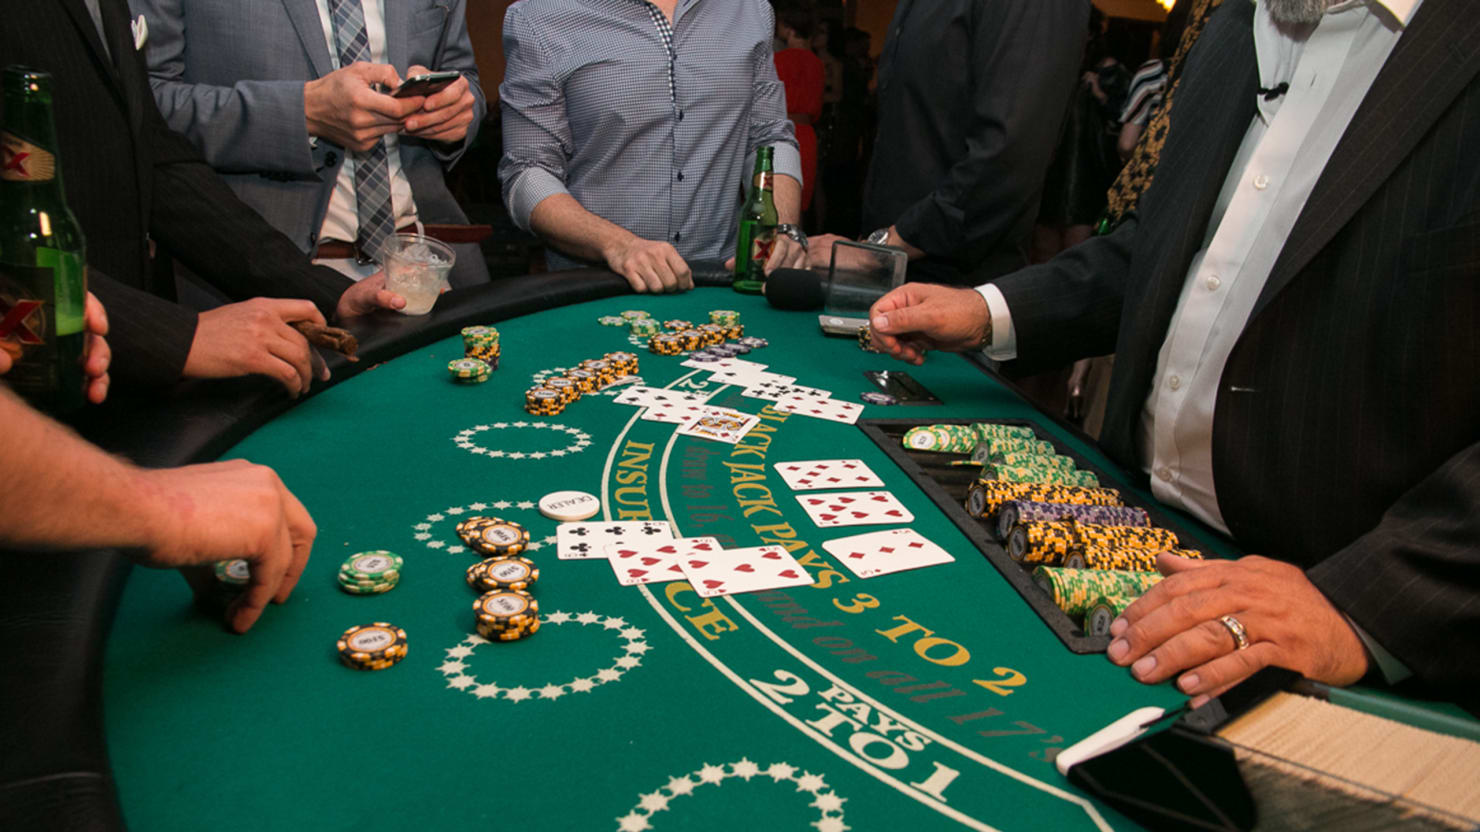 6 Great Tips Tricks To Play Live Blackjack With Dealers Film Daily